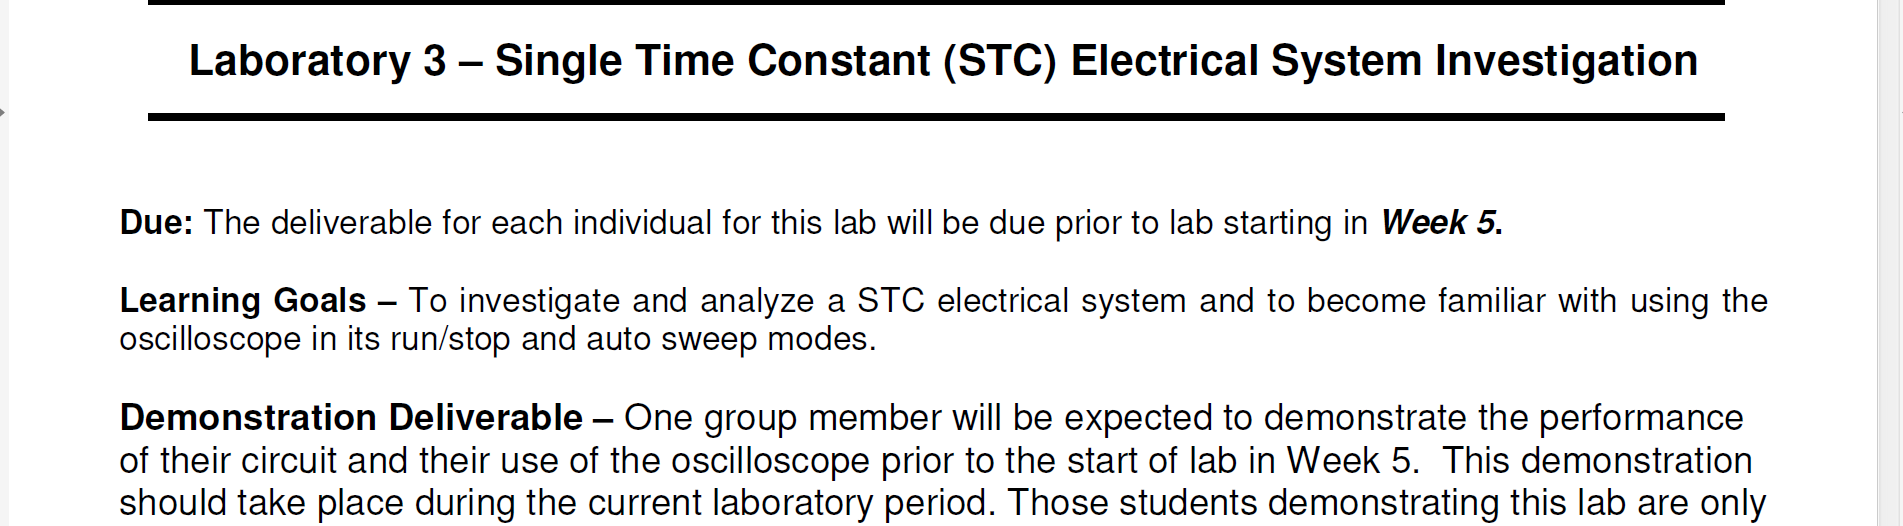 Solved: Laboratory 3 - Single Time Constant (STC) Electric